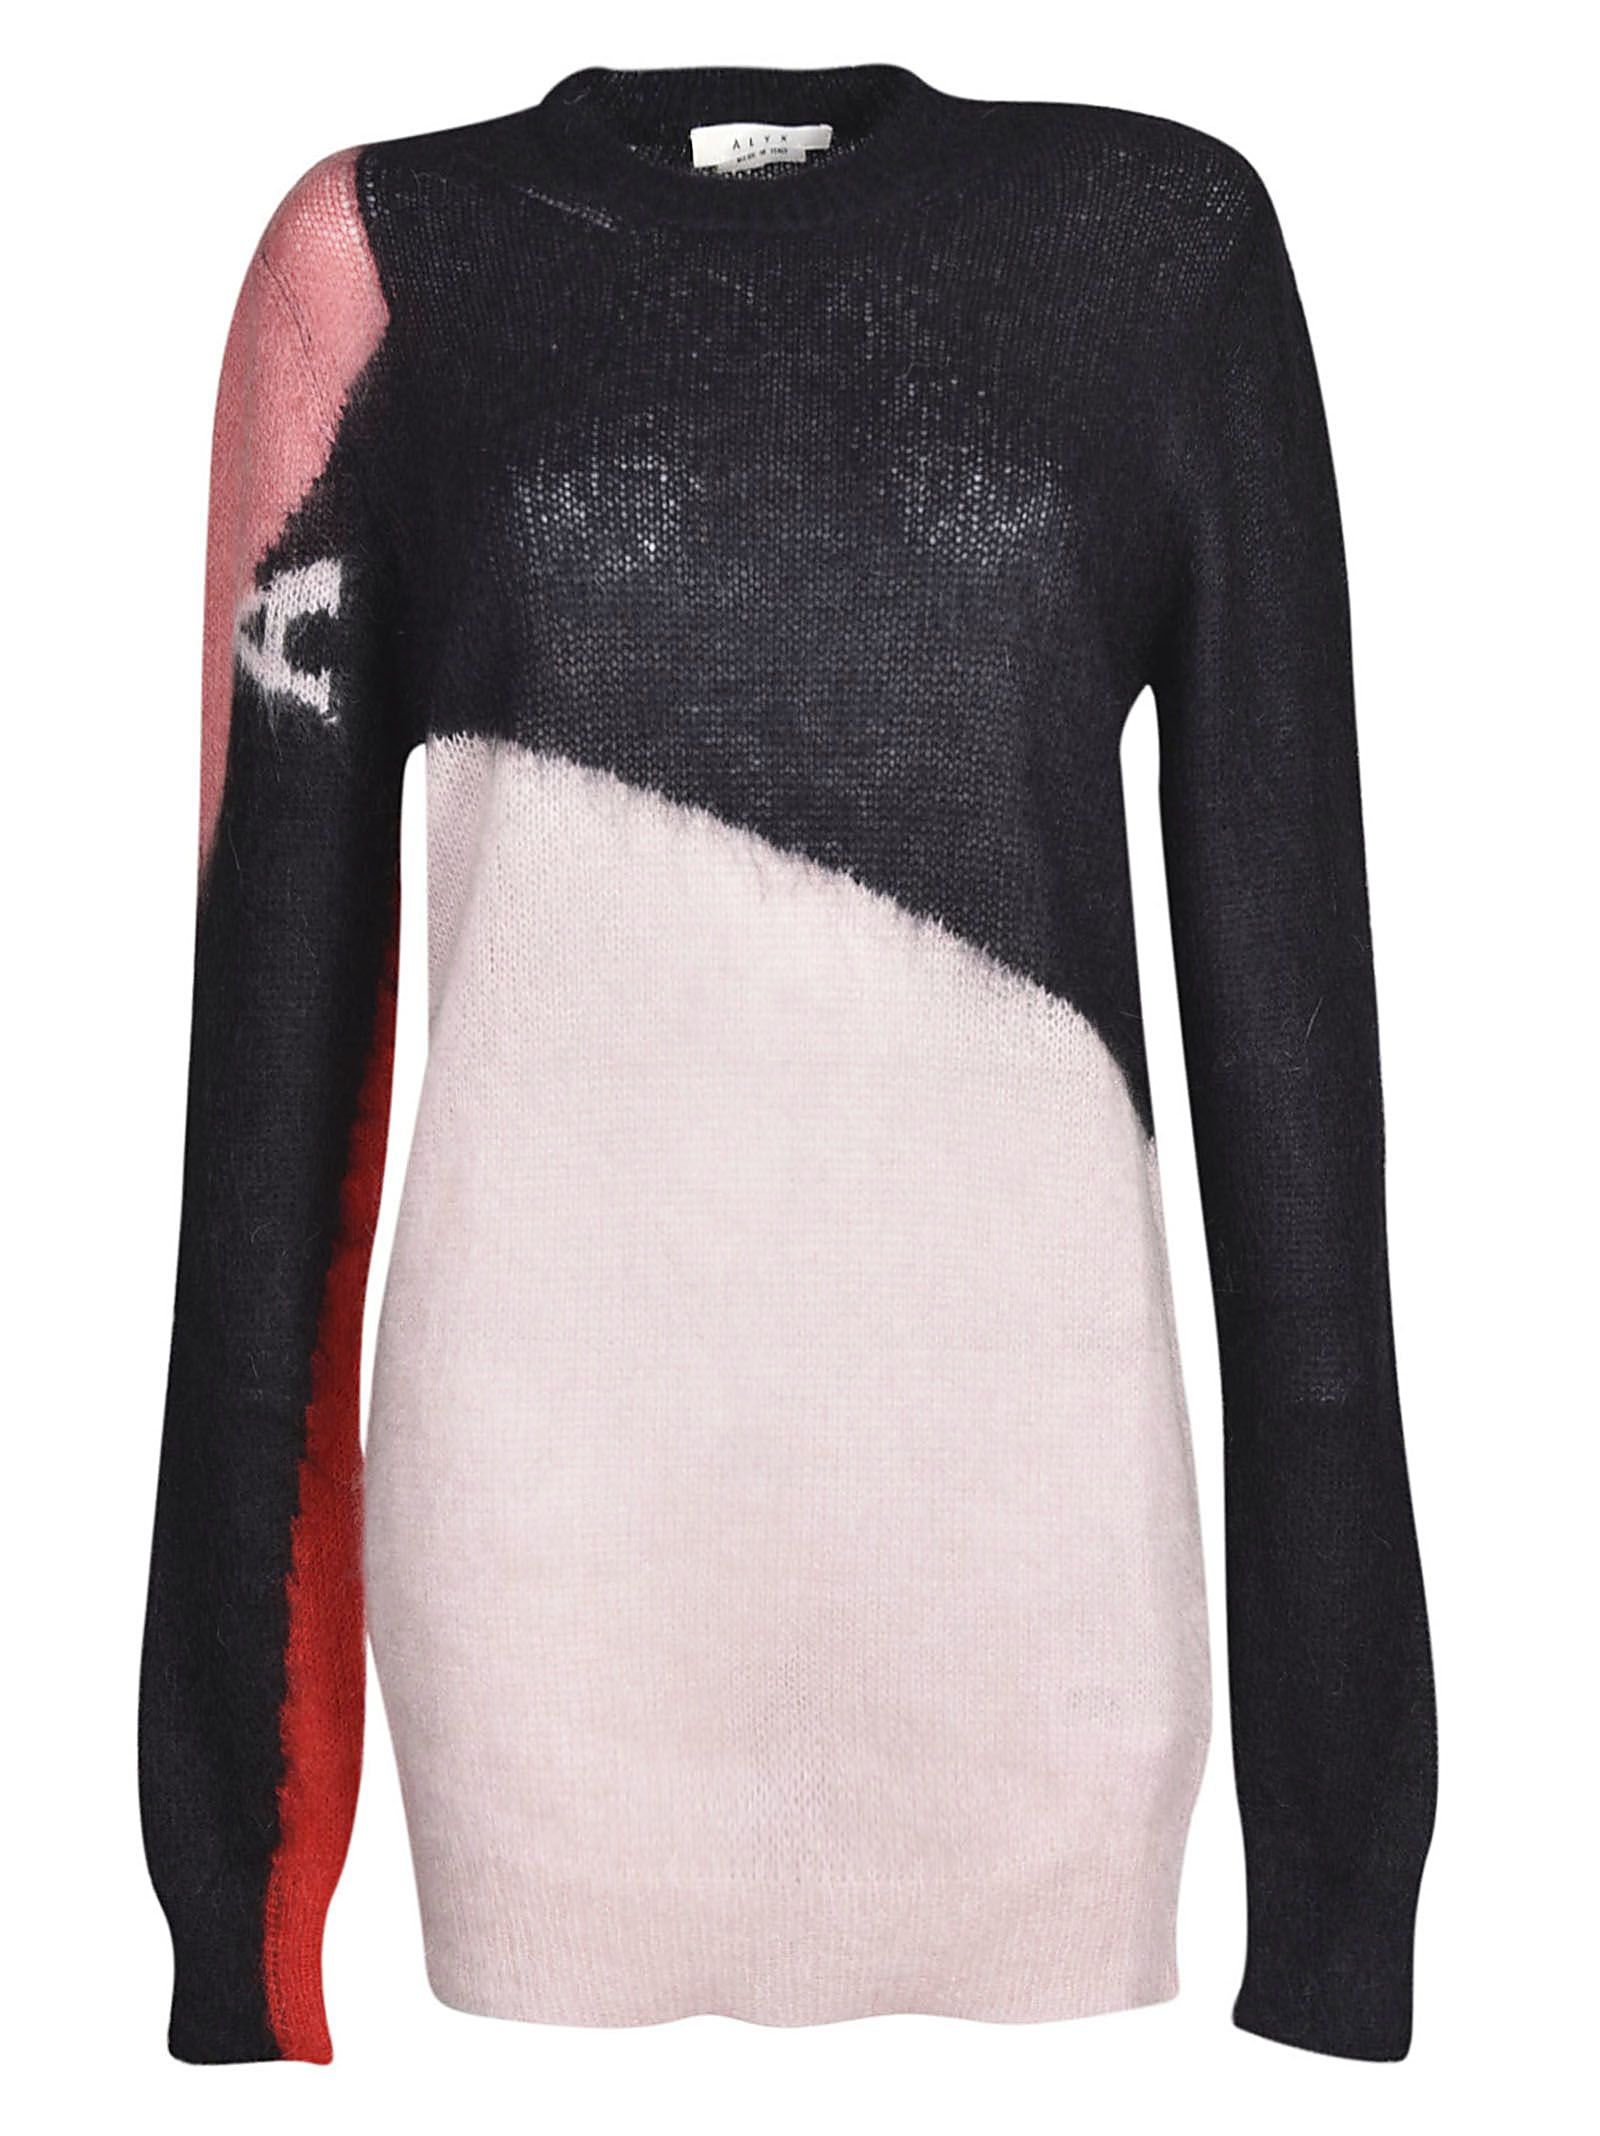 4f40dadeafe4a Alyx Alyx Color-block Sweater - Pink - 10701121